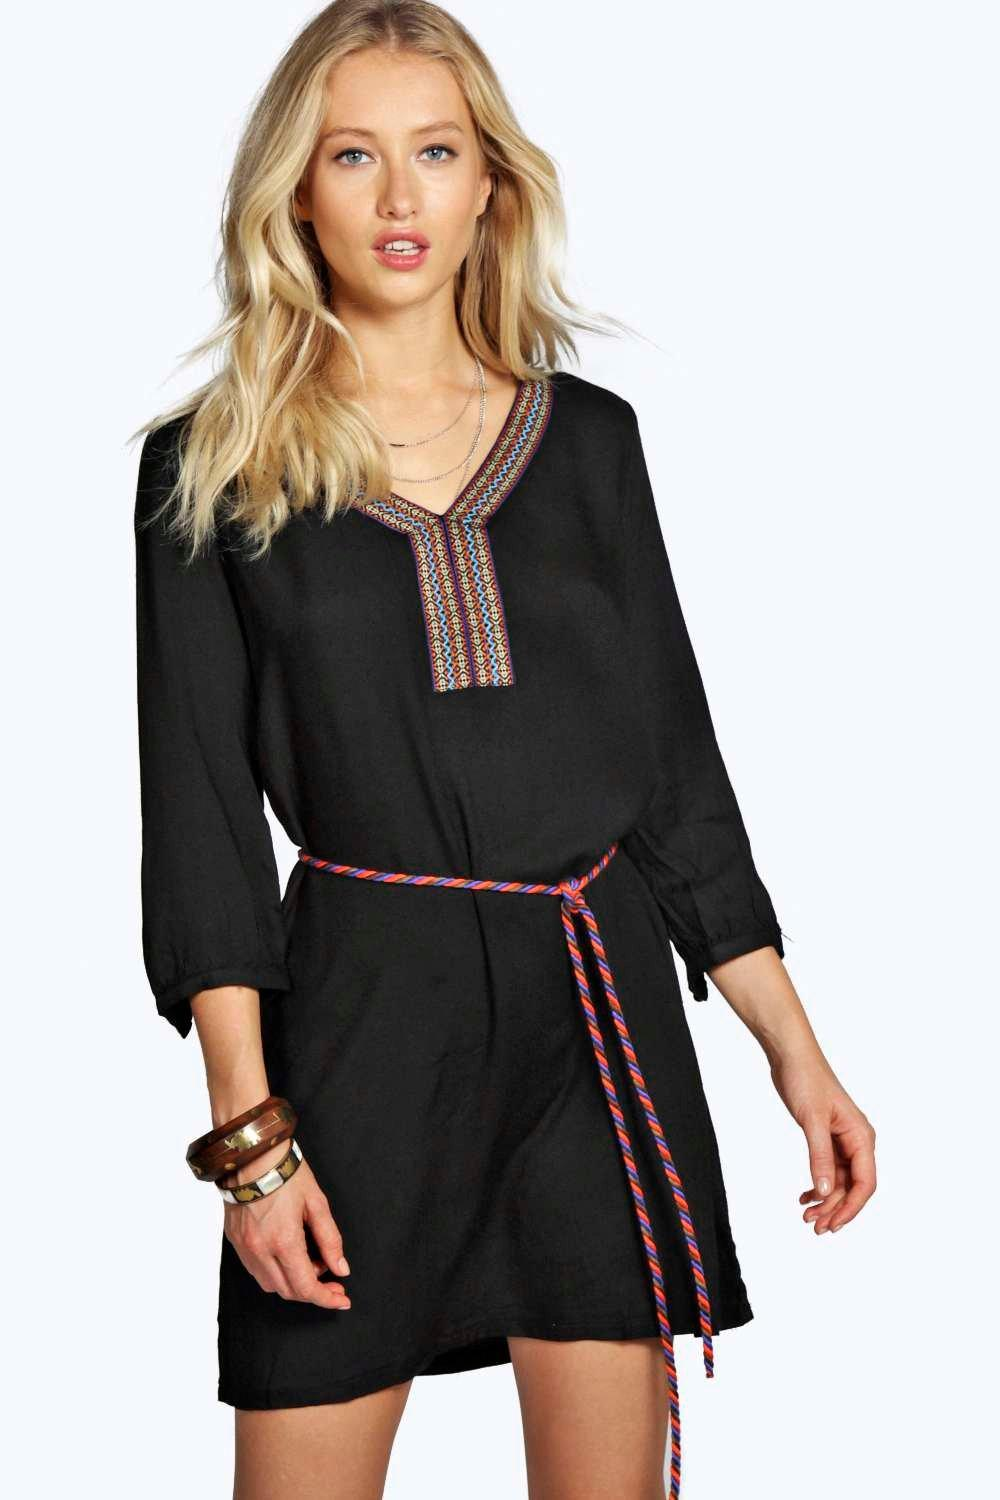 boohoo Giovanna Ethnic Tunic Dress - black